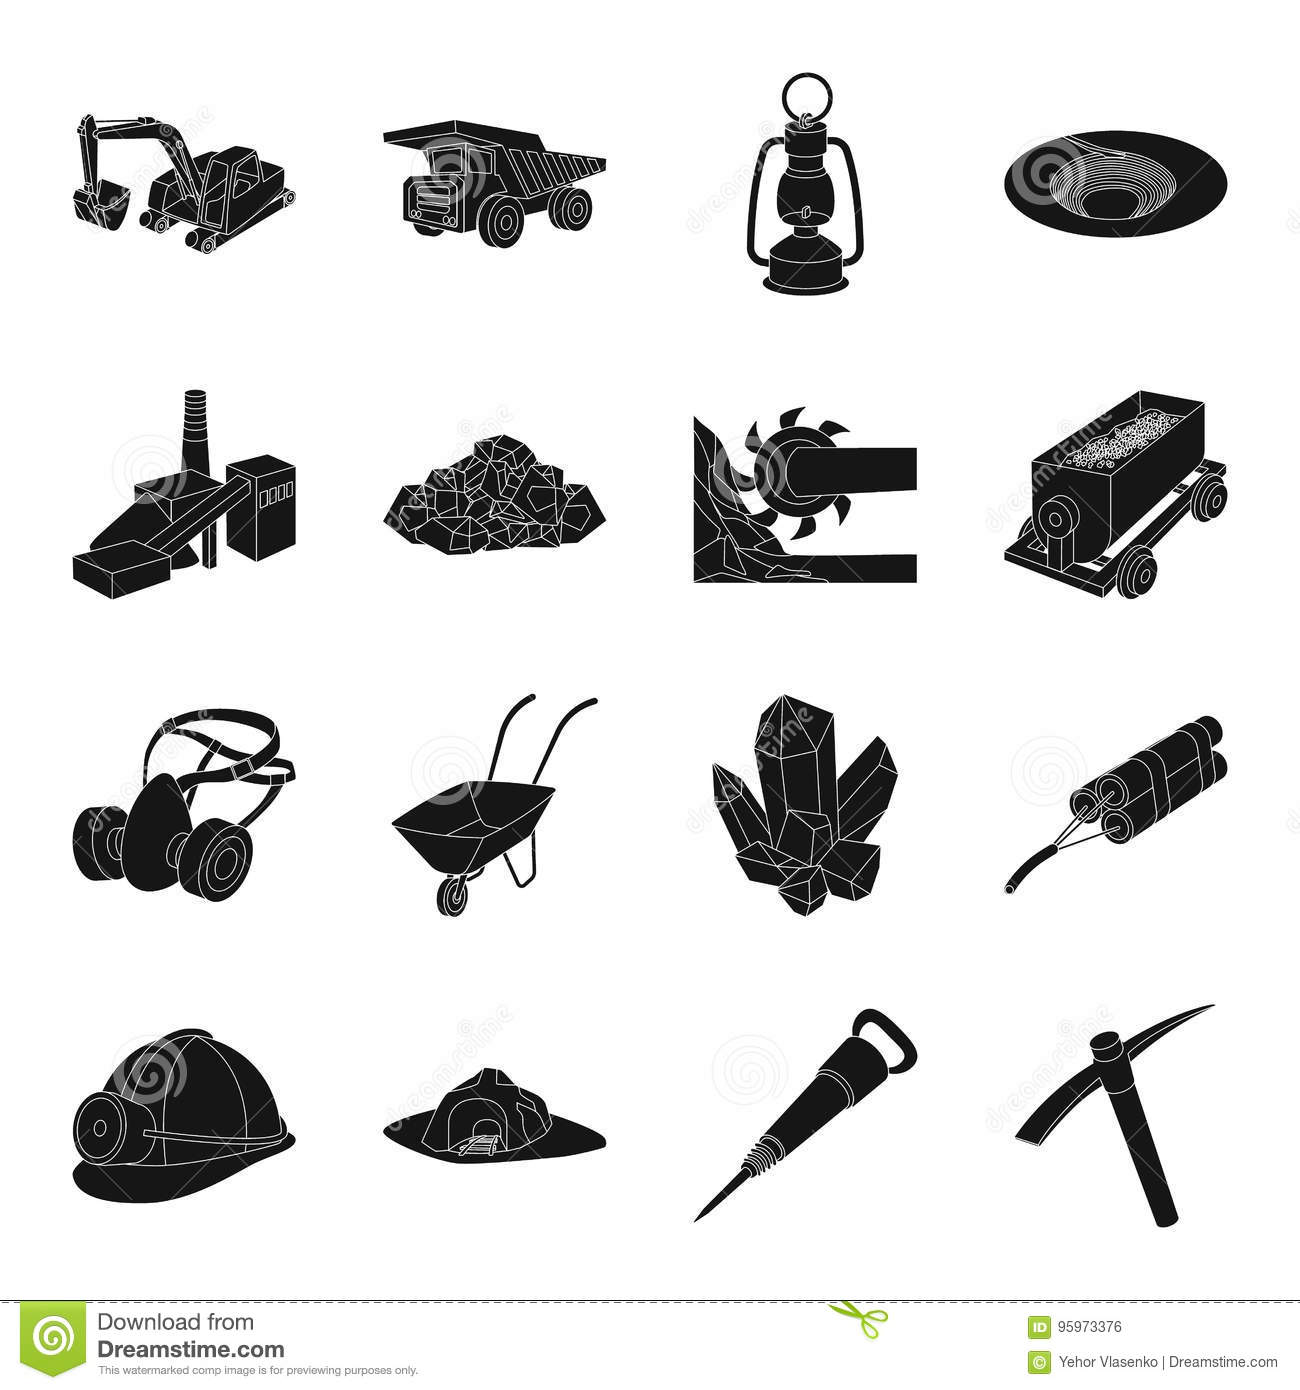 28b36da229 Excavator, jackhammer, helmet and other items for the mine. Mine set  collection icons